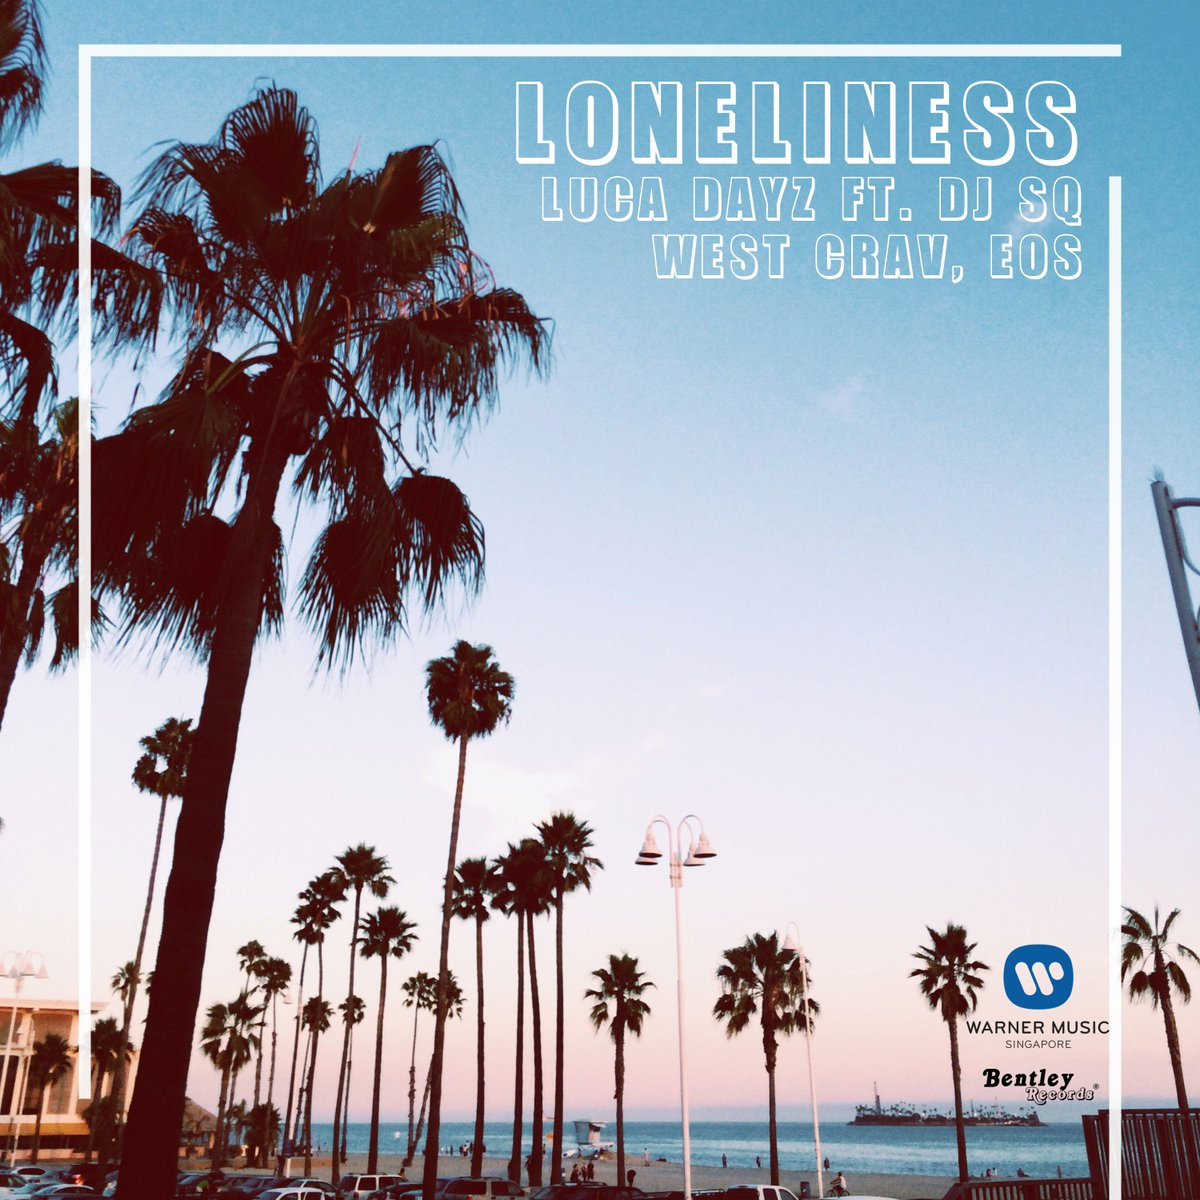 """Bentley Records is happy to announce that our first official release with @WarnerMusicSG """"Loneliness"""" featuring @LucaDayz @WestCrav, DJ SQ & EOS is coming out Nov 9th! #BentleyRecords #WarnerMusic #Singapore #NewMusic #NewRelease #HipHop #Pop #RnB #Promo #Repost #Retweet #RT"""